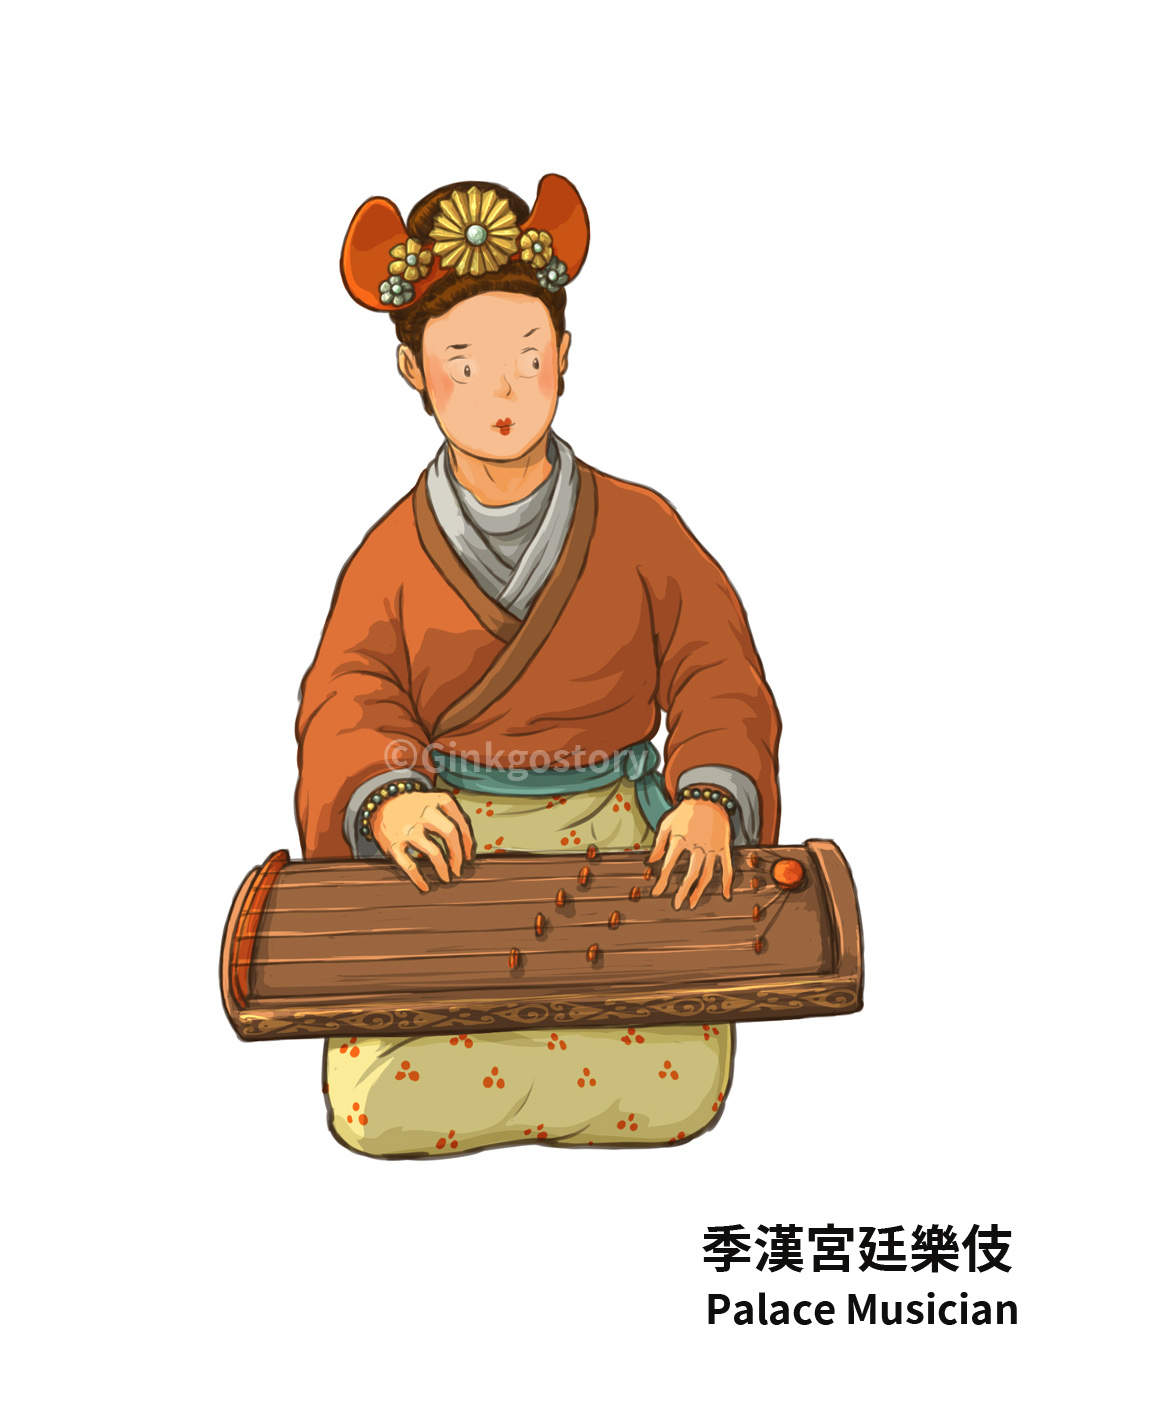 Three Kingdoms: Palace Musician